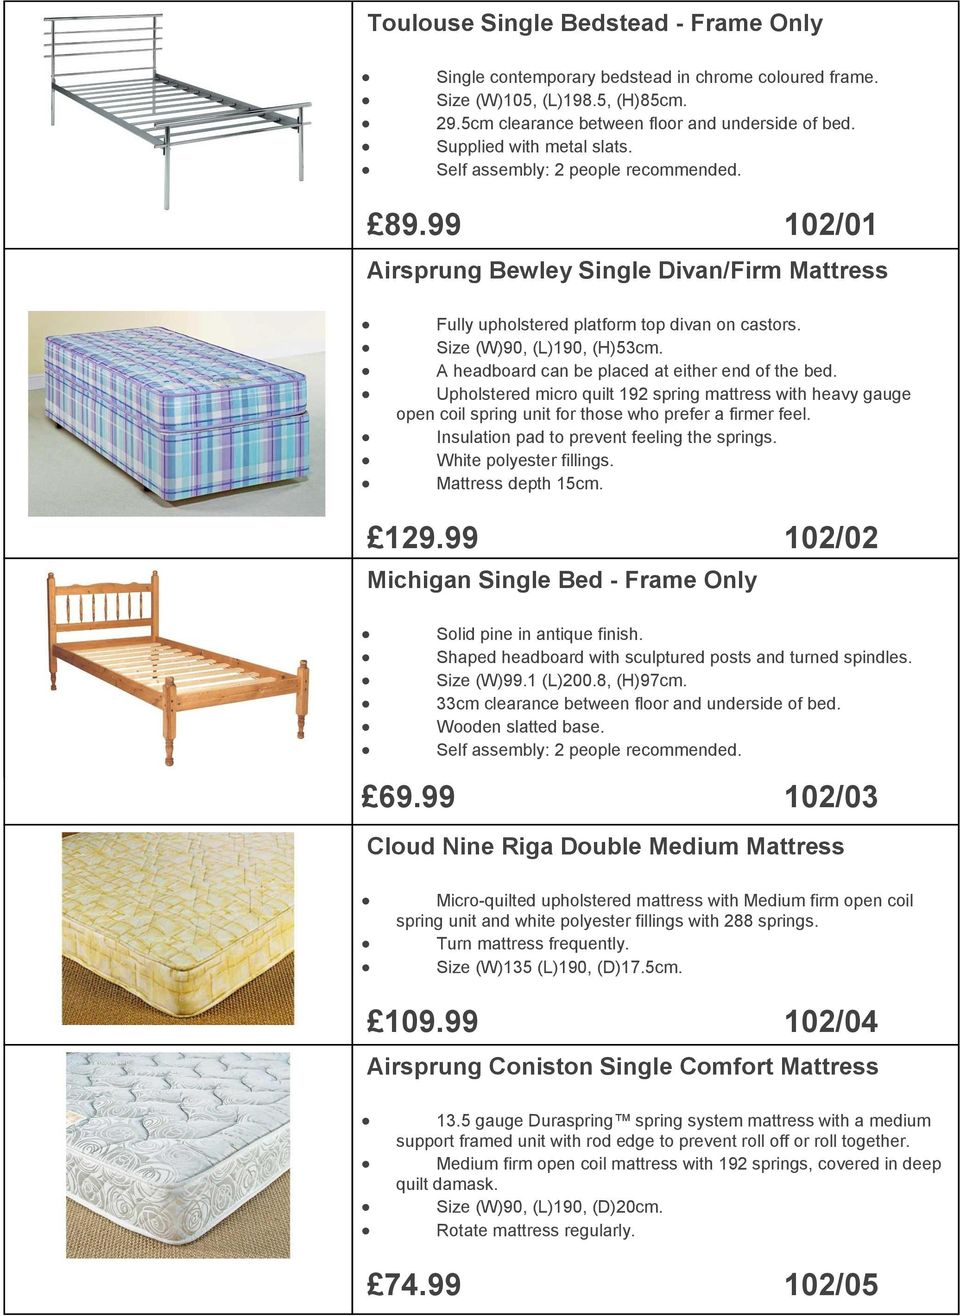 99 102/01 Continental Airsprung Bewley Solid Pine Single Double Divan/Firm Bed - Frame Only - Fully upholstered platform top divan on castors. Solid Size (W)90, pine with (L)190, slatted (H)53cm.